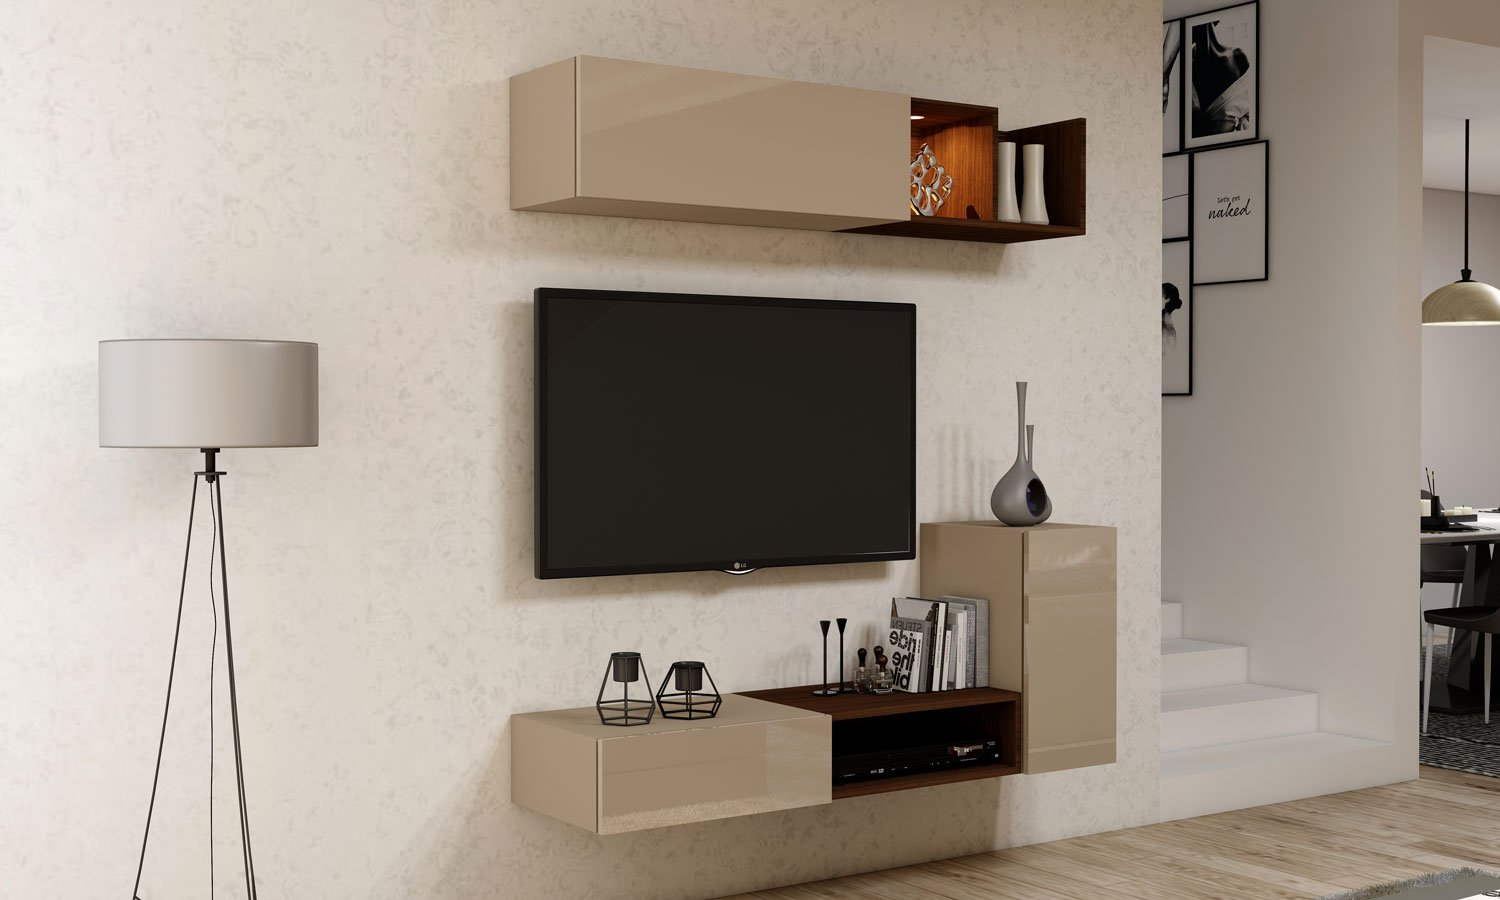 Gloss TV unit with Storage in Drawer, Flap up in Cashmere Grey finish, and open units in Lincoln Walnut